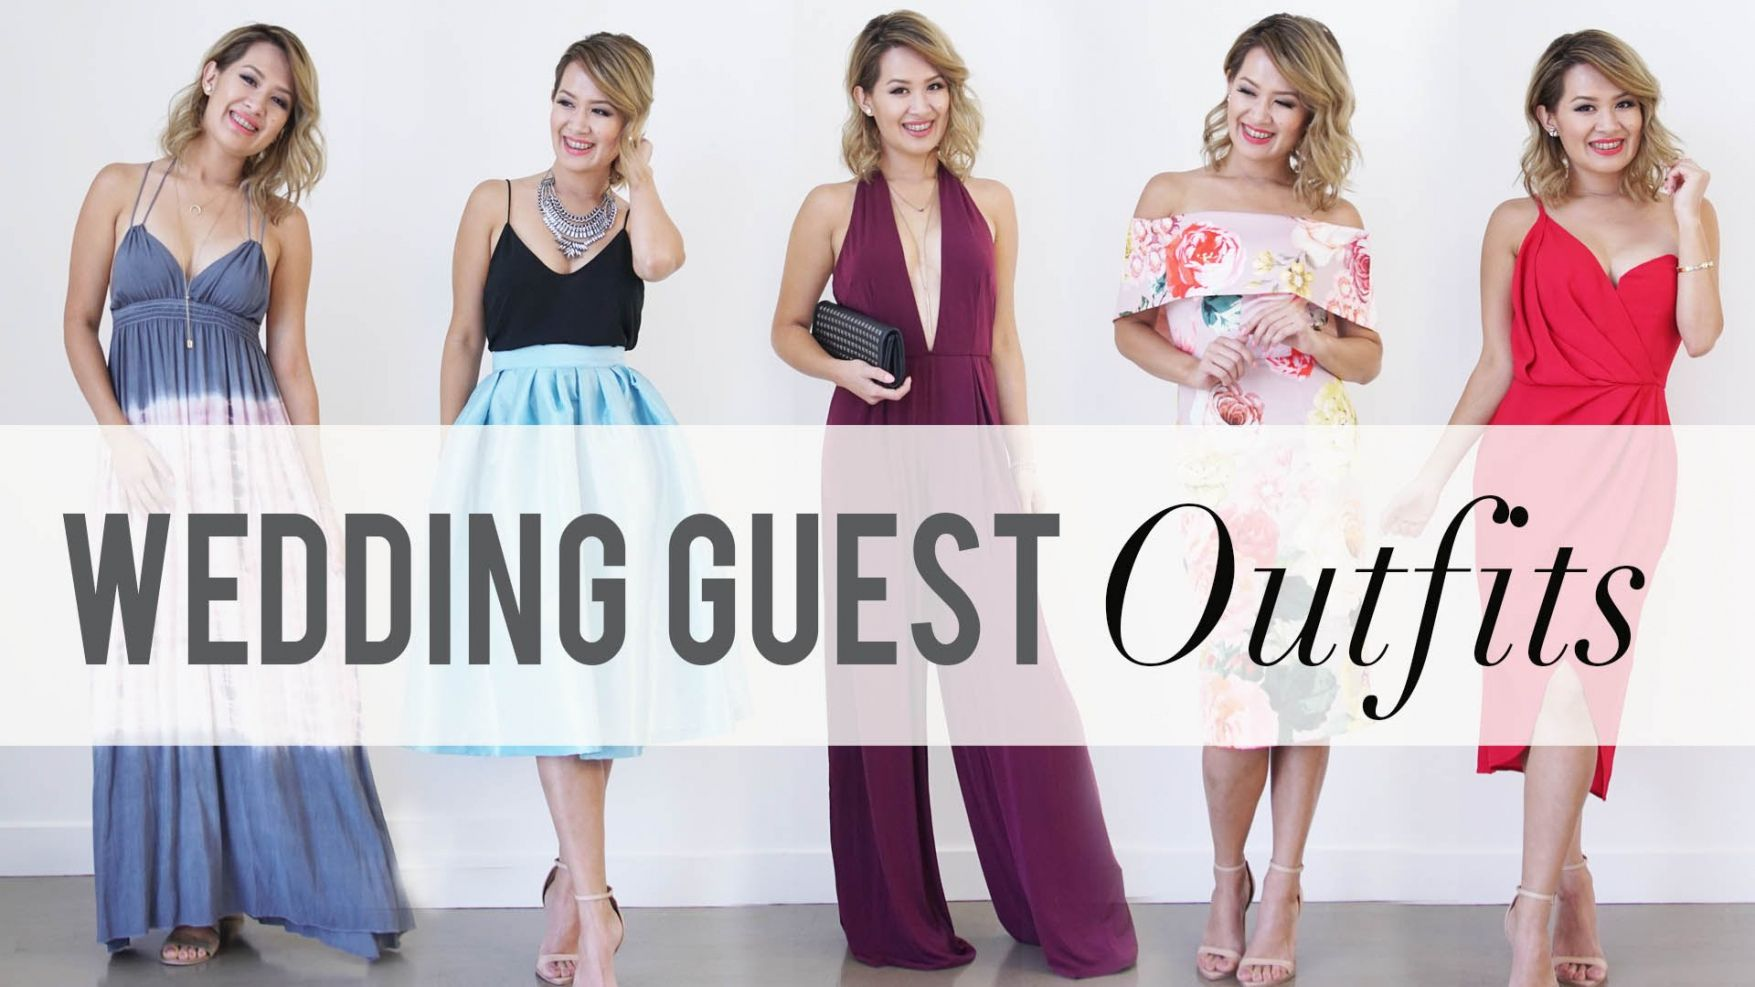 50 Where To Find A Dress To Wear To A Wedding How To Dress For A